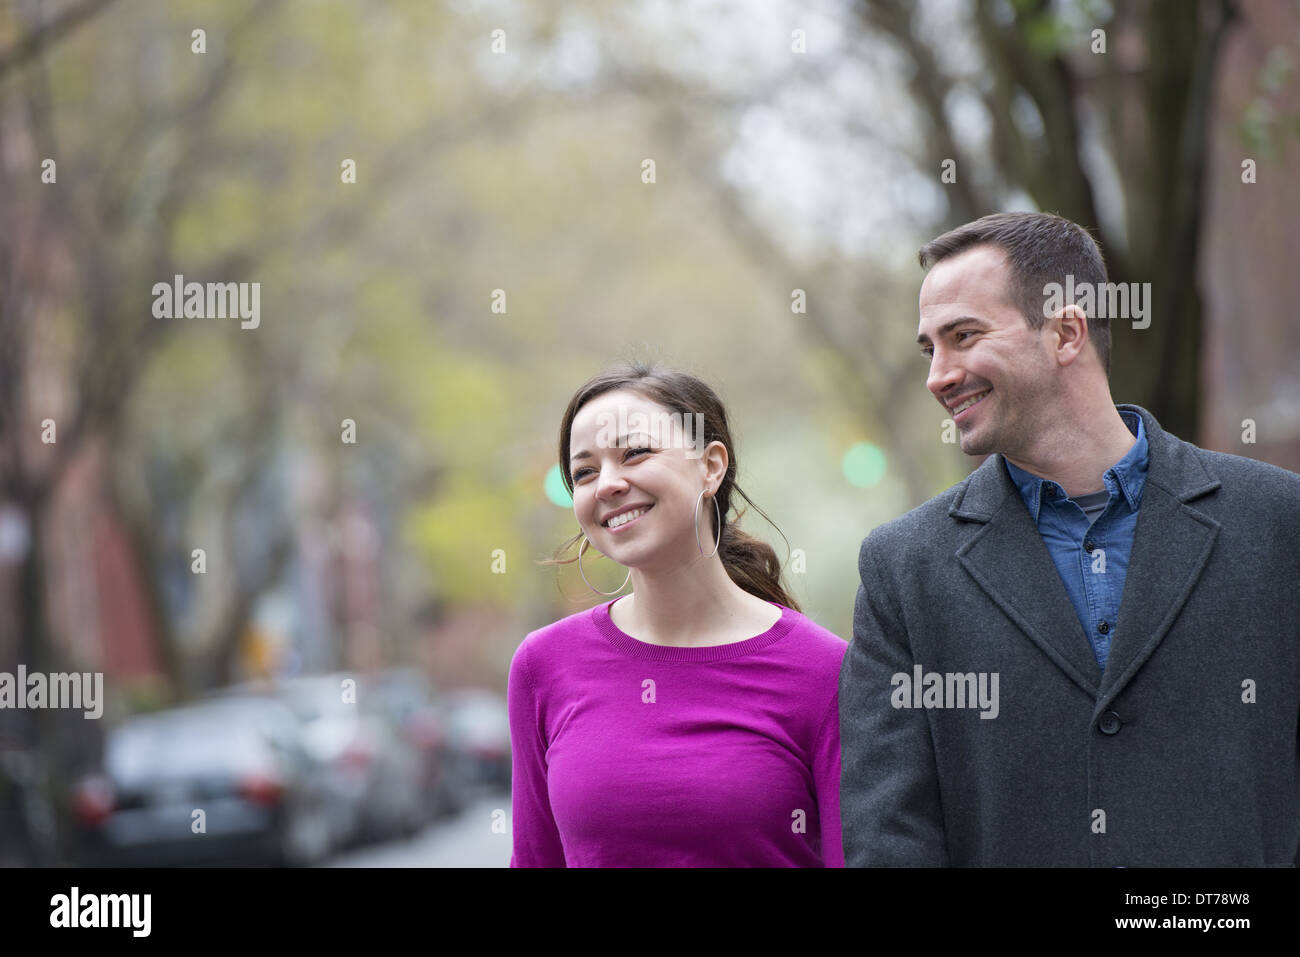 A couple, a man and woman side by side on a city street. - Stock Image